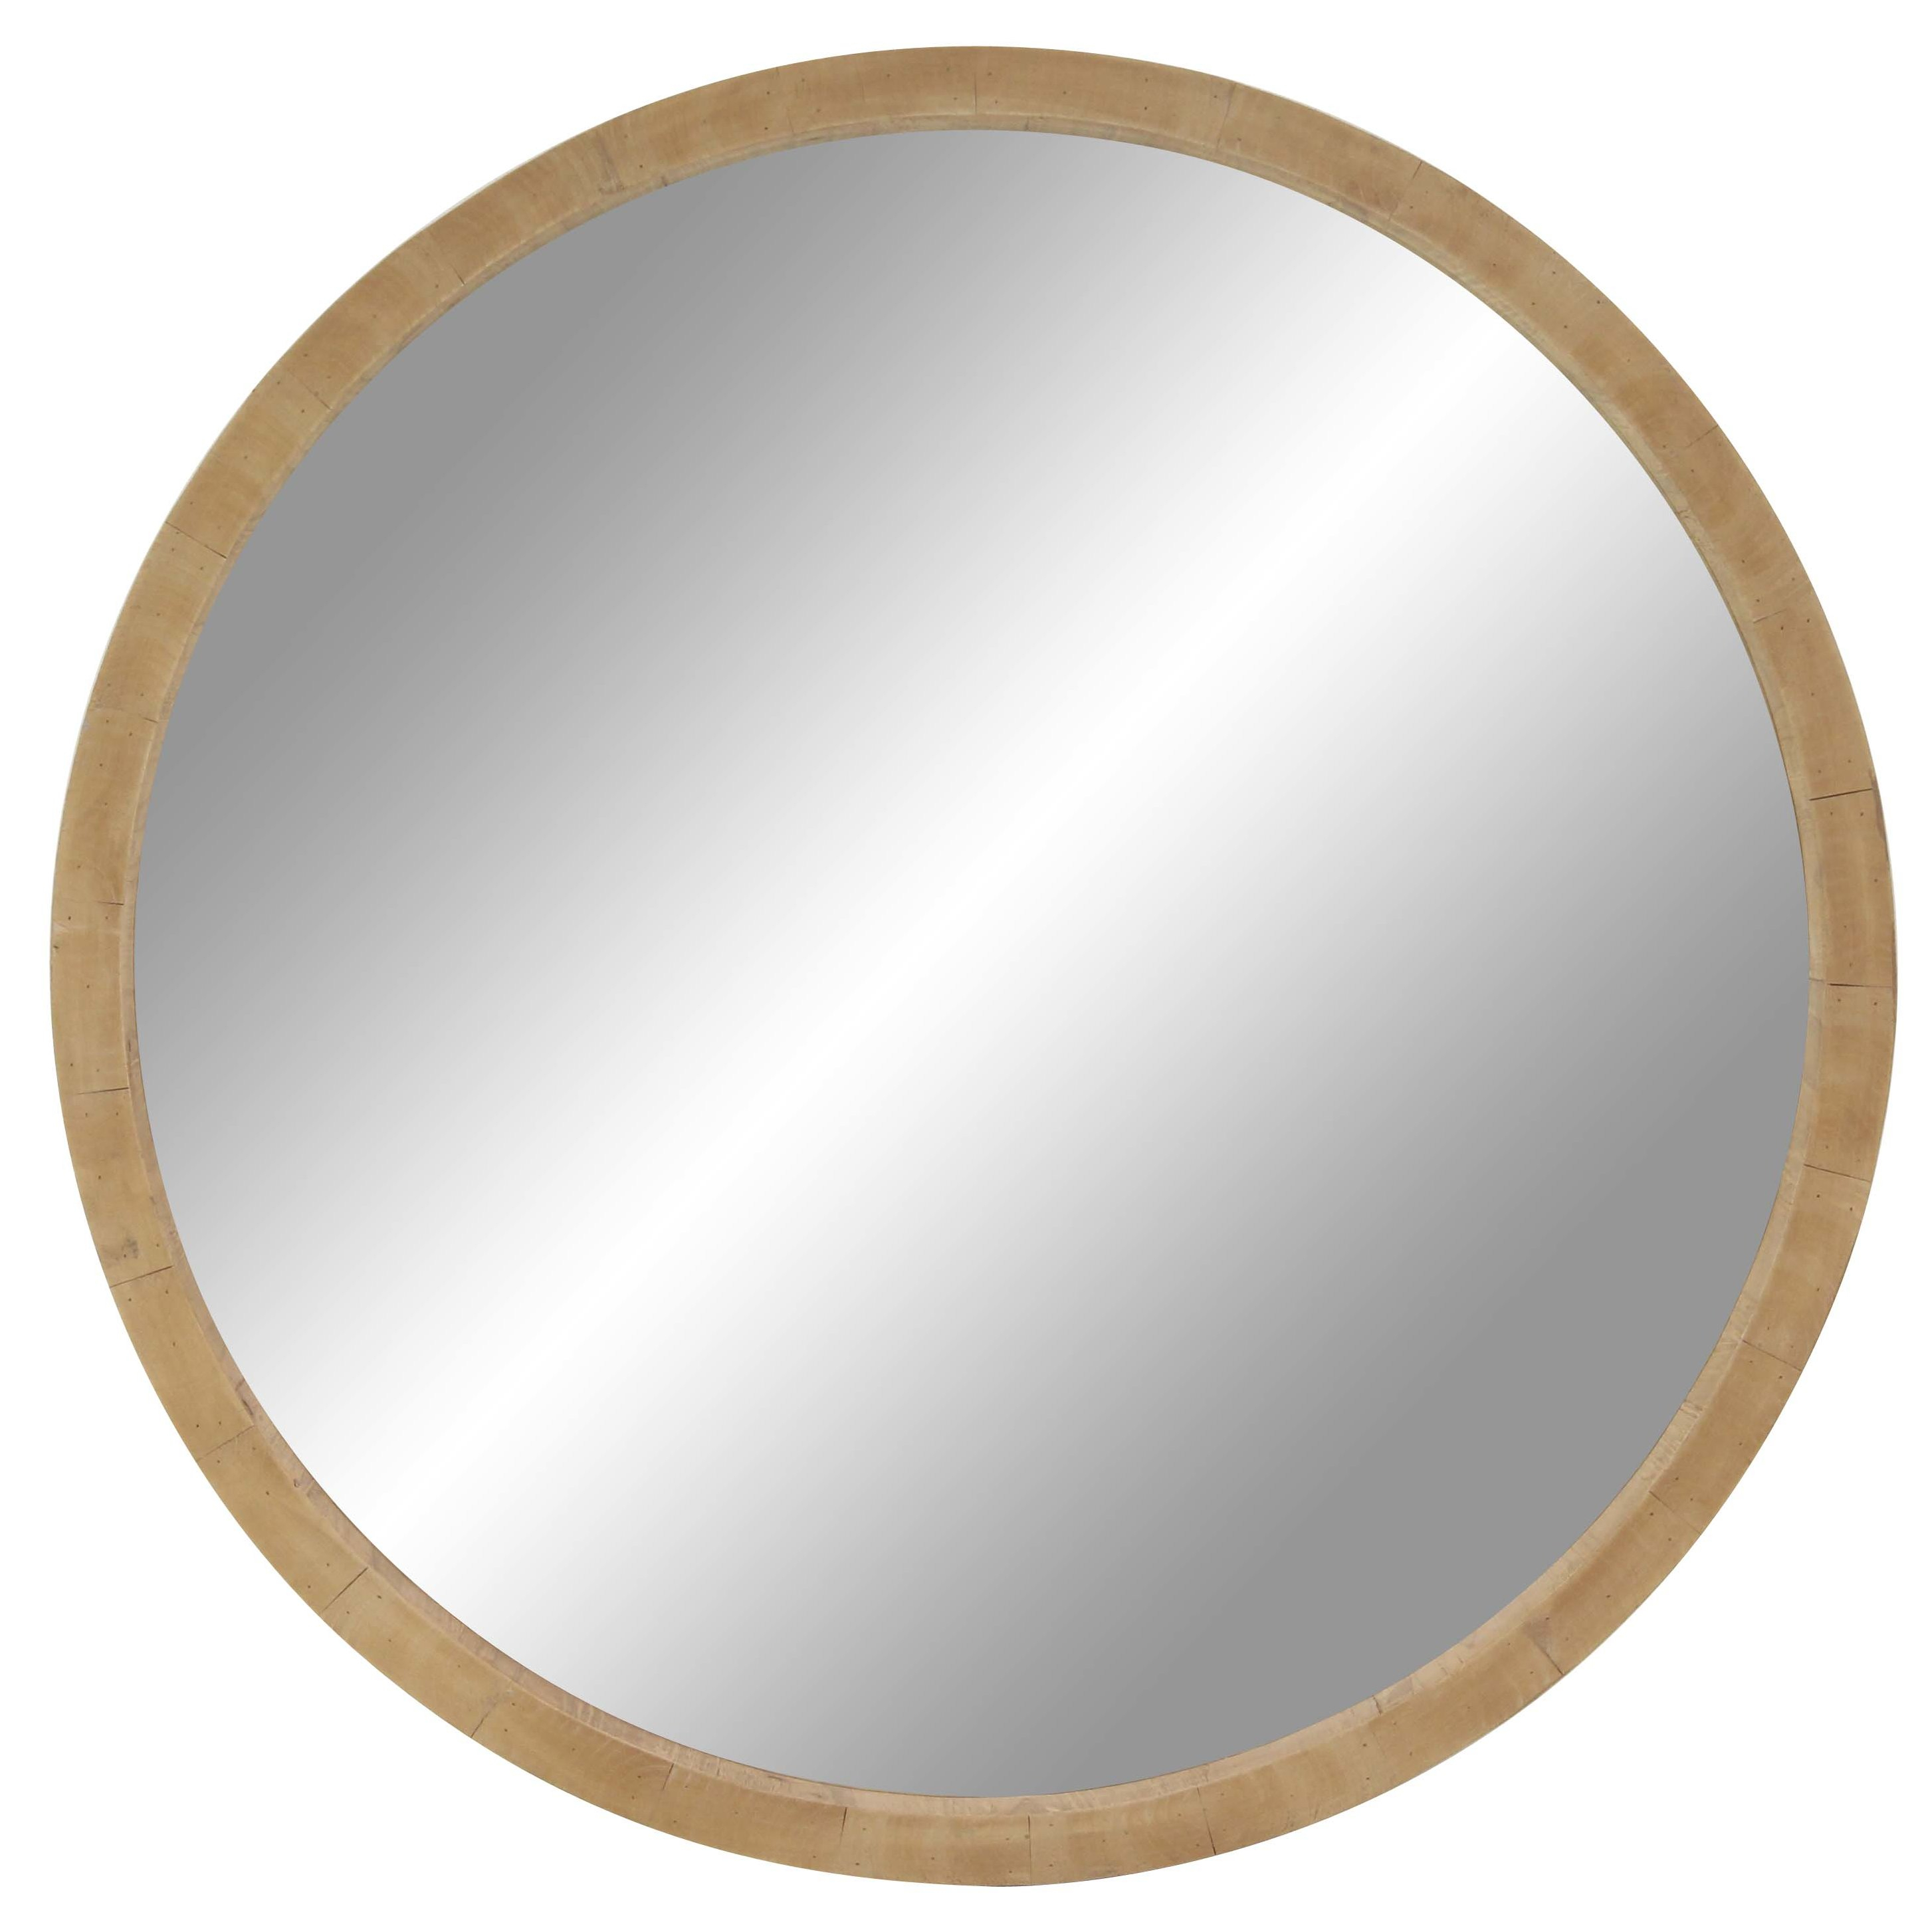 Rigdon Rustic Accent Mirror For Loftis Modern & Contemporary Accent Wall Mirrors (View 18 of 20)